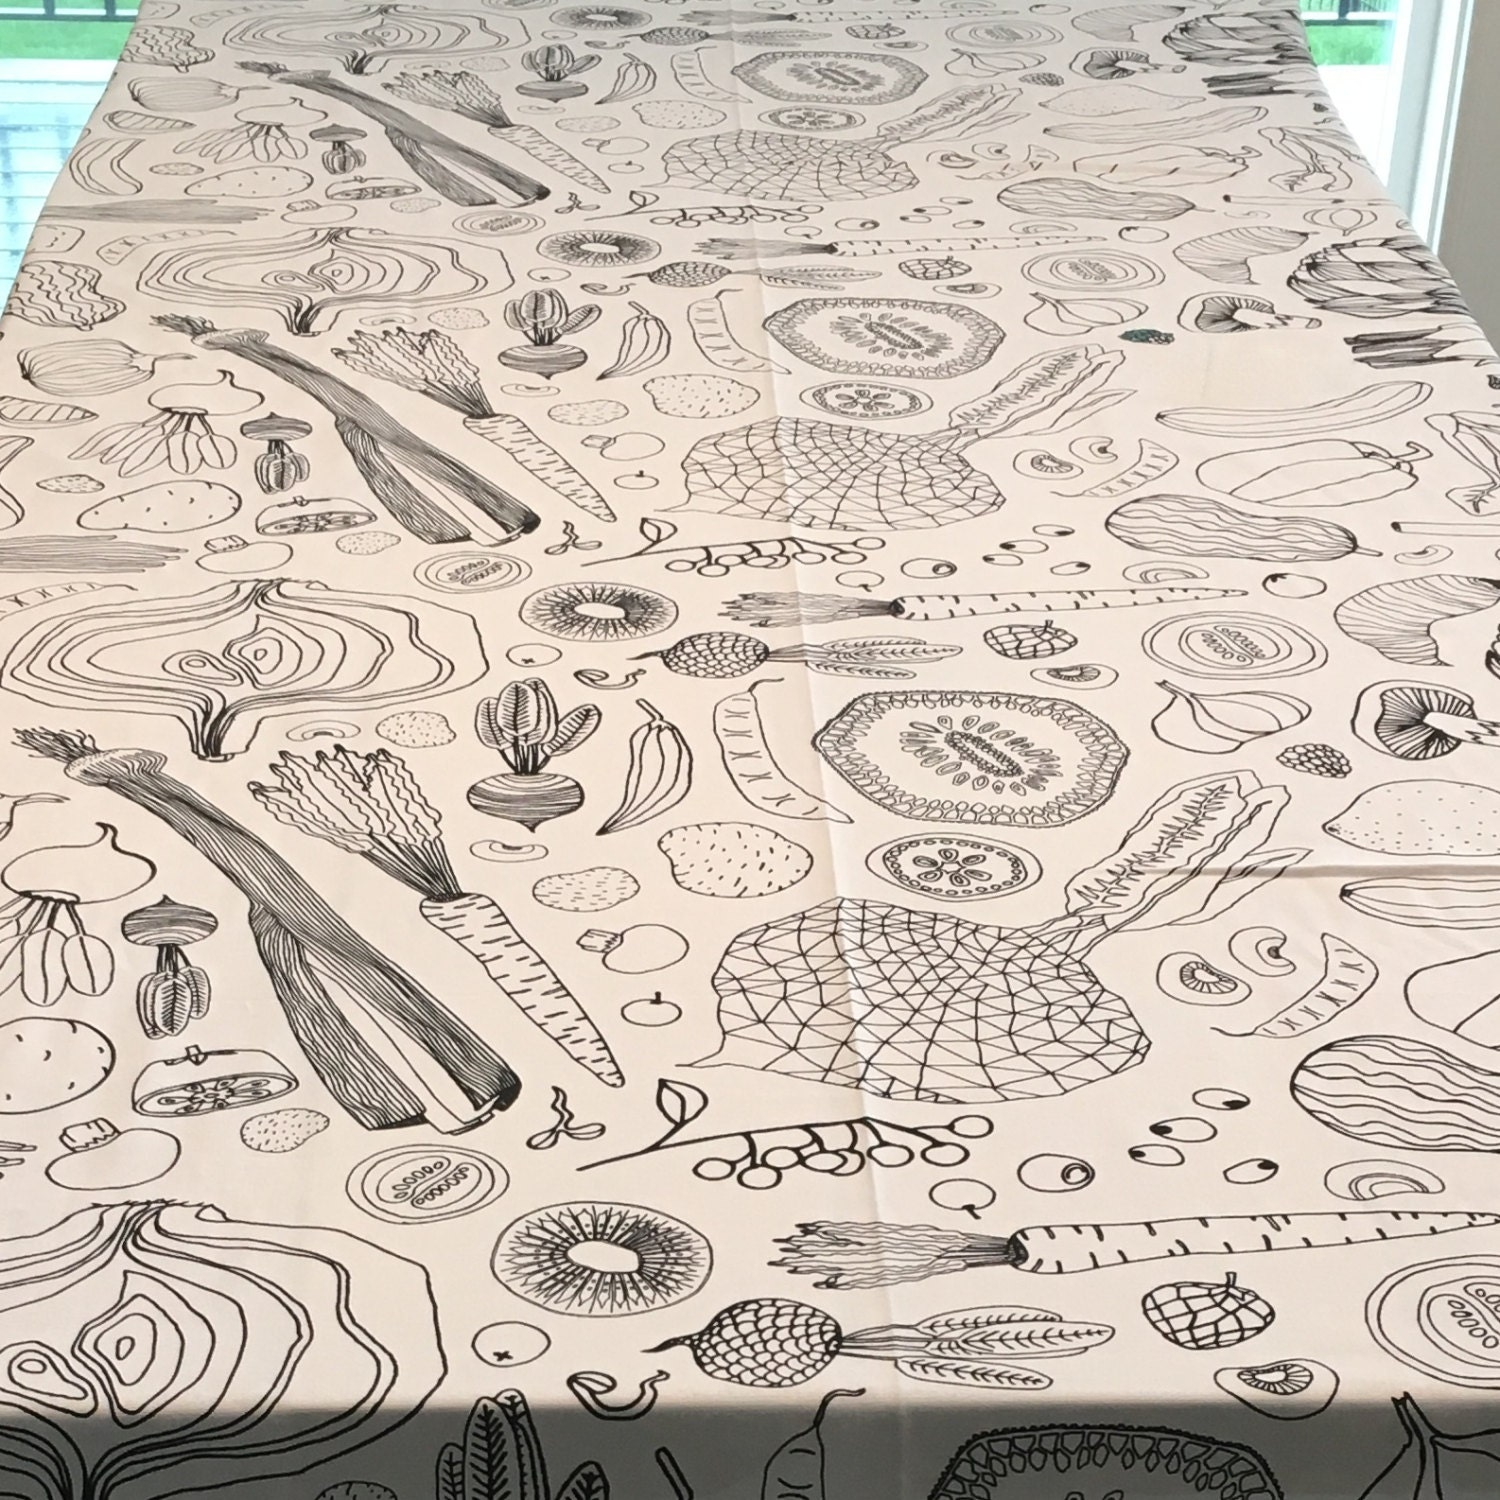 Interactive online adult coloring book - Coloring Book Tablecloth Interactive Tablecloth Coloring Book For Adults Harvest Tablecloth Holiday Tablecloth Tablecloth For Kids